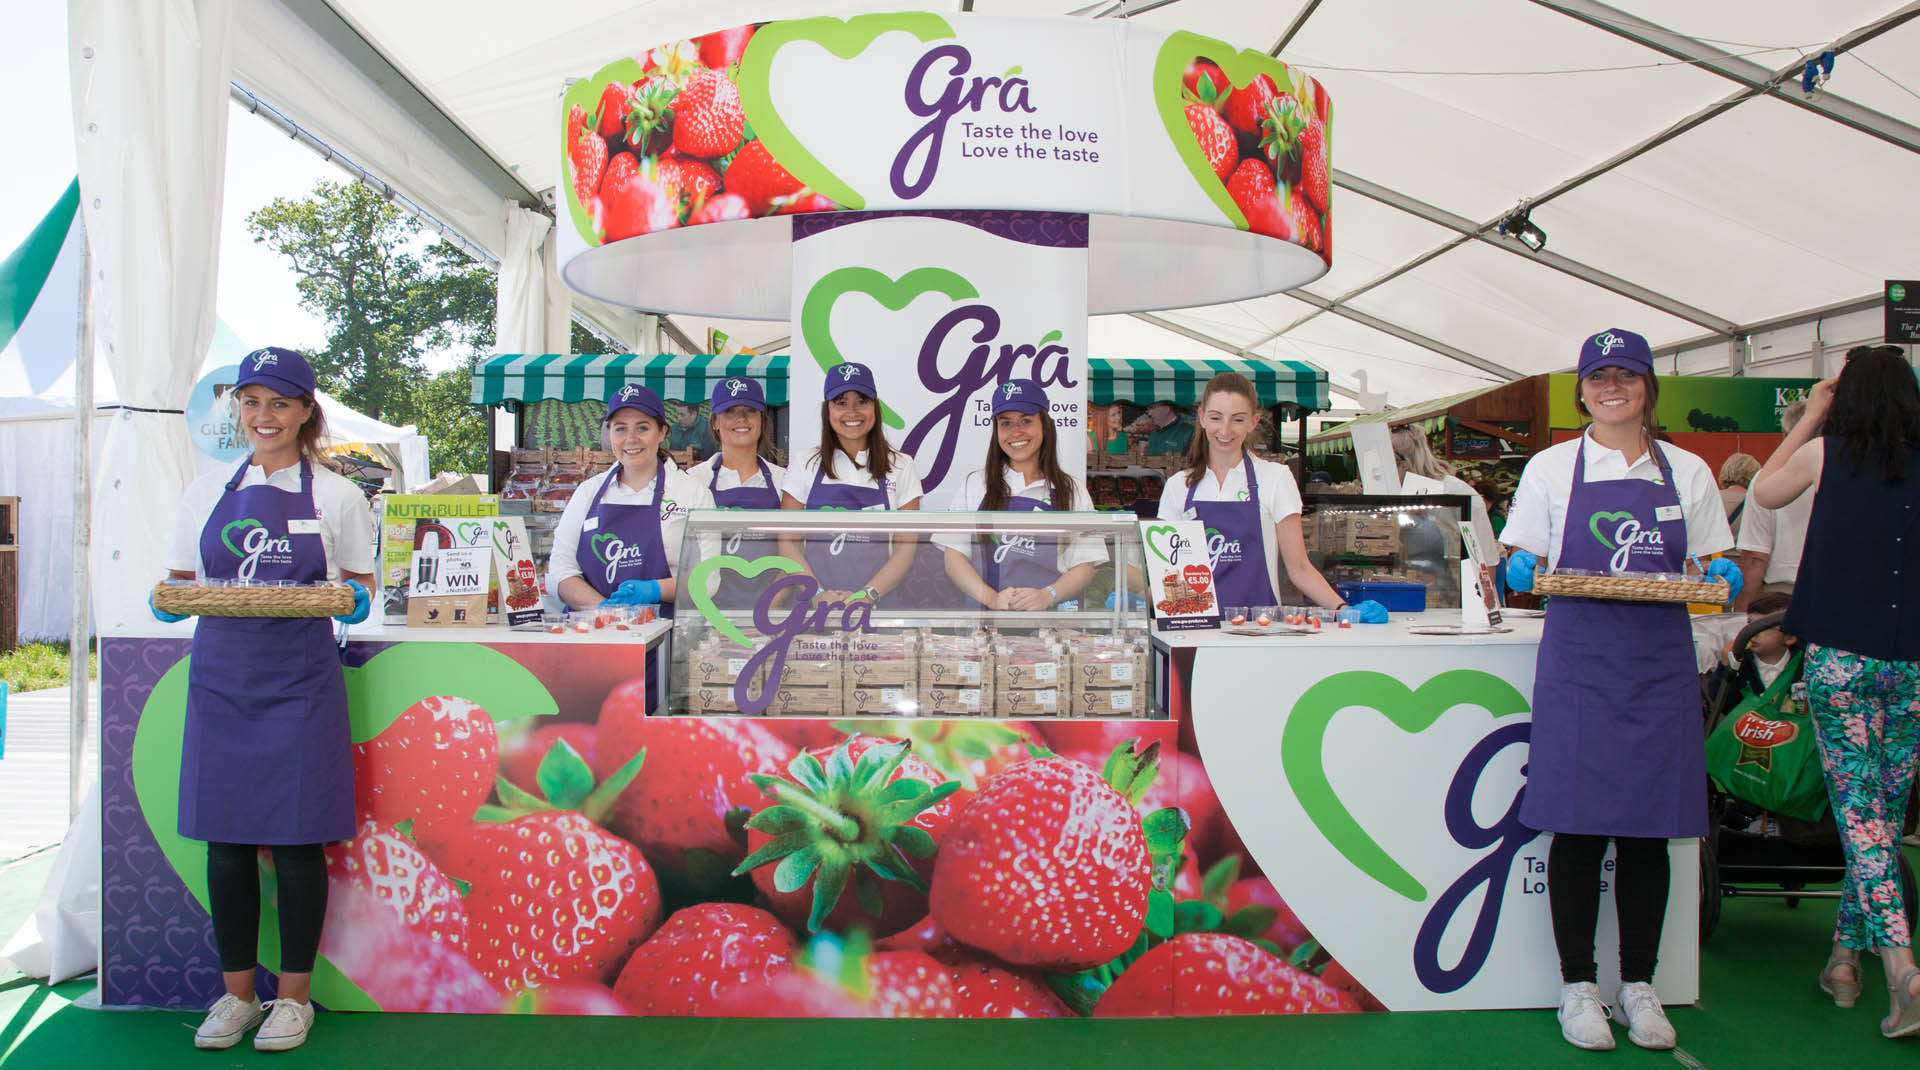 Gra Branding and Food Packaging Best Stand Bloom 2016 Bloom Festival.